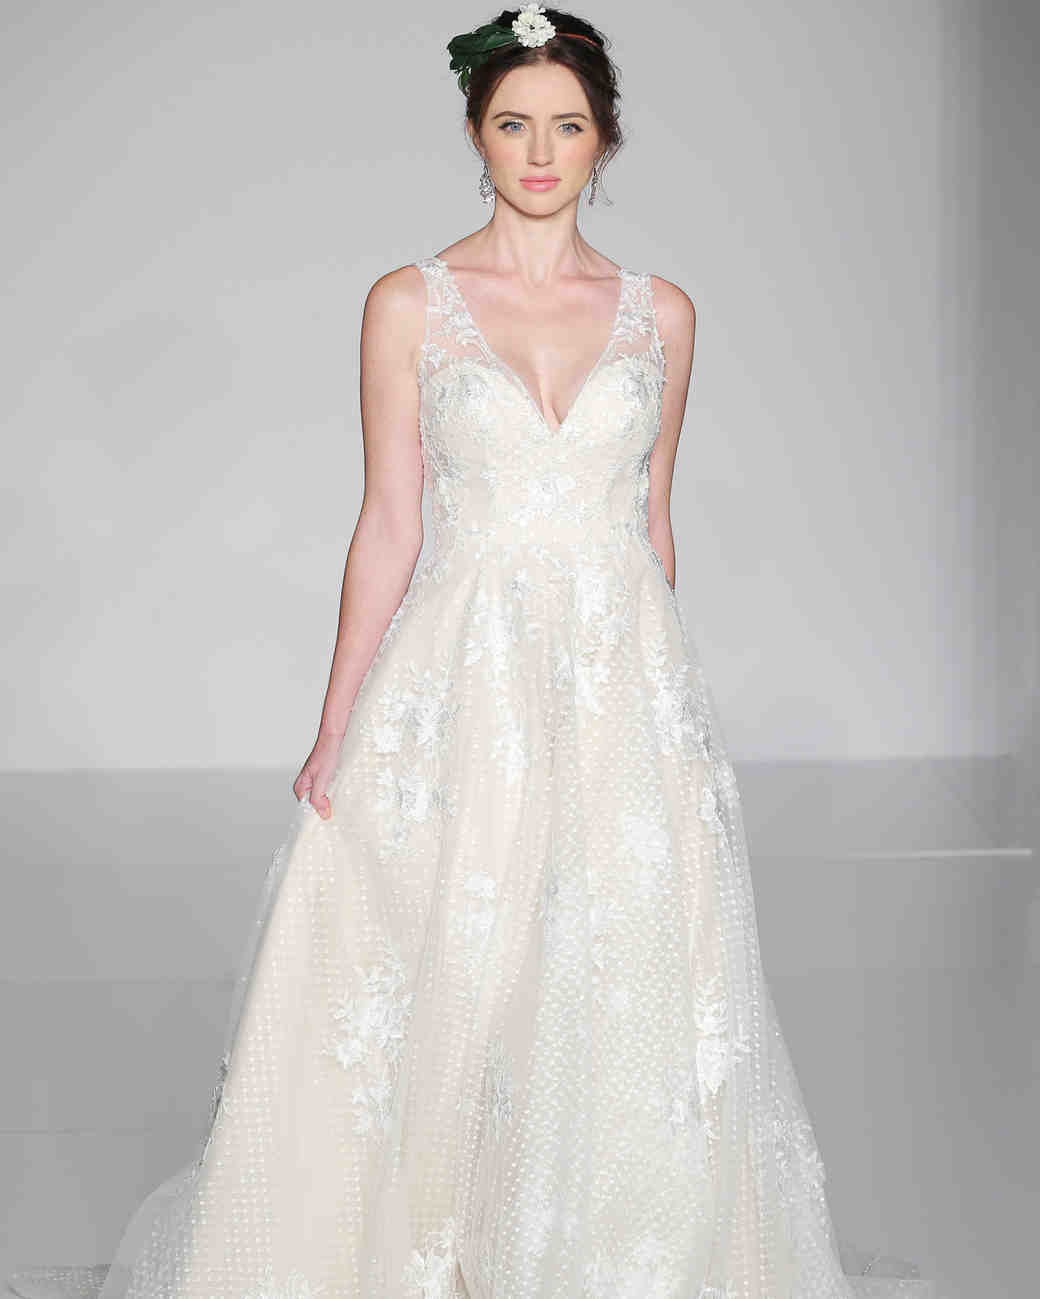 Fall Wedding Gown: Maggie Sottero Spring 2017 Wedding Dress Collection